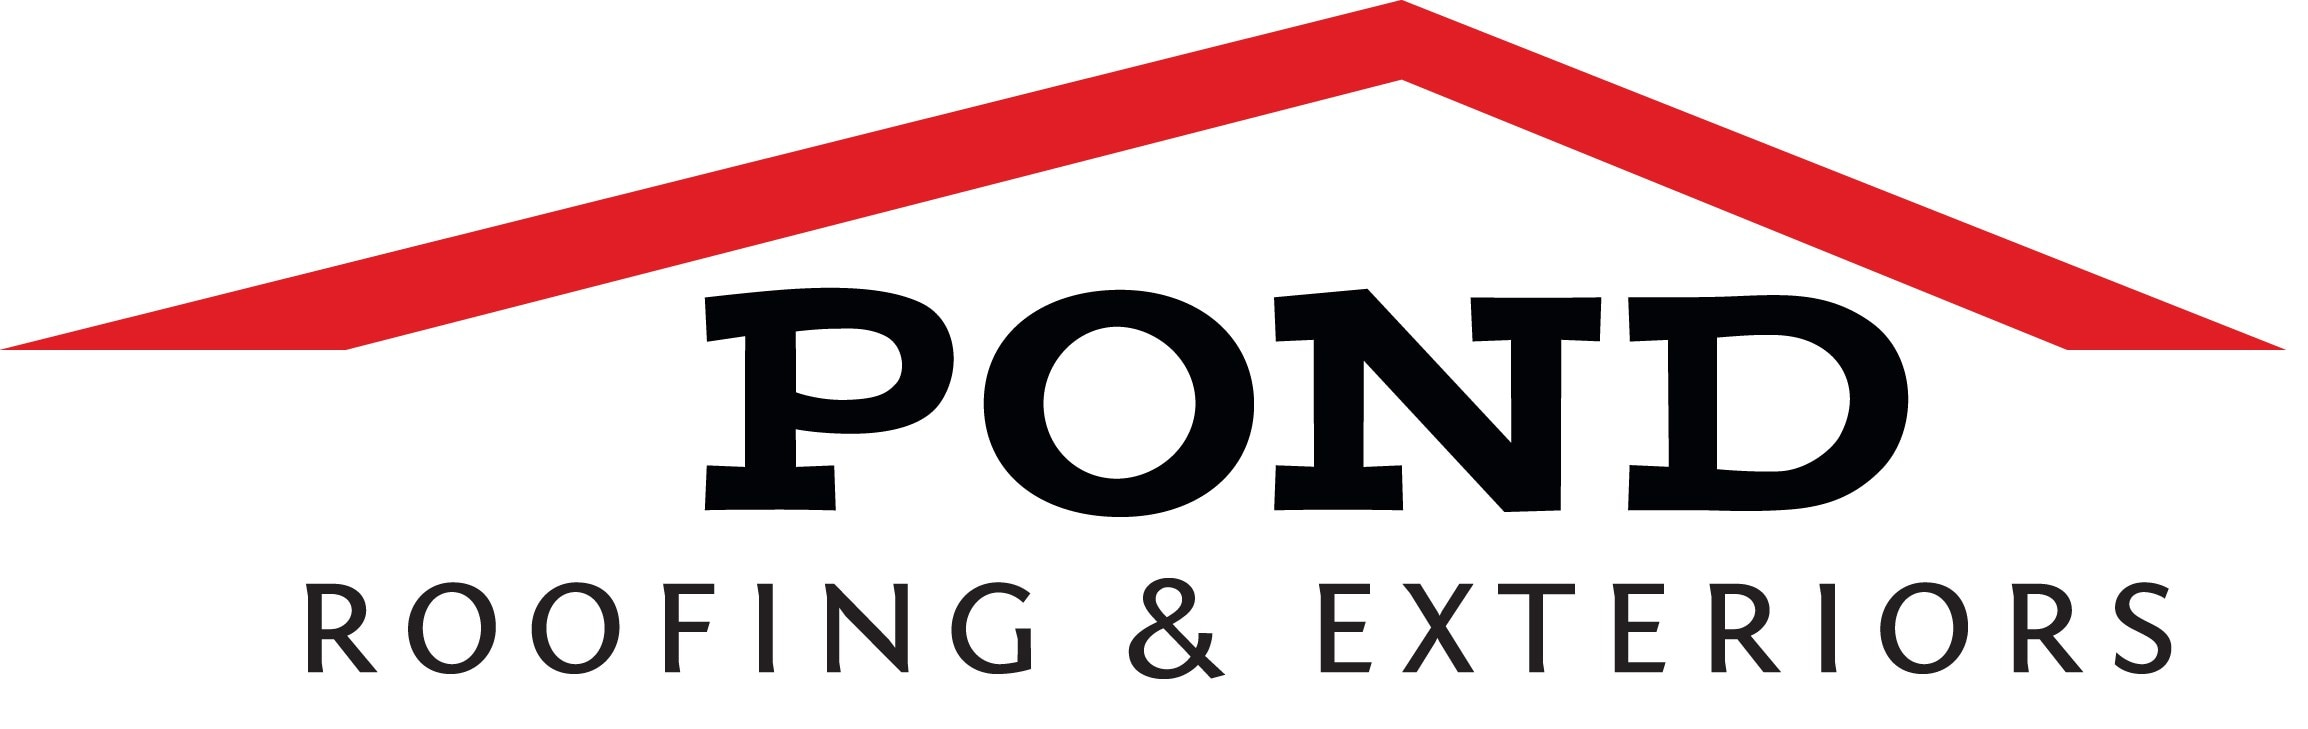 Pond Roofing Co Inc logo